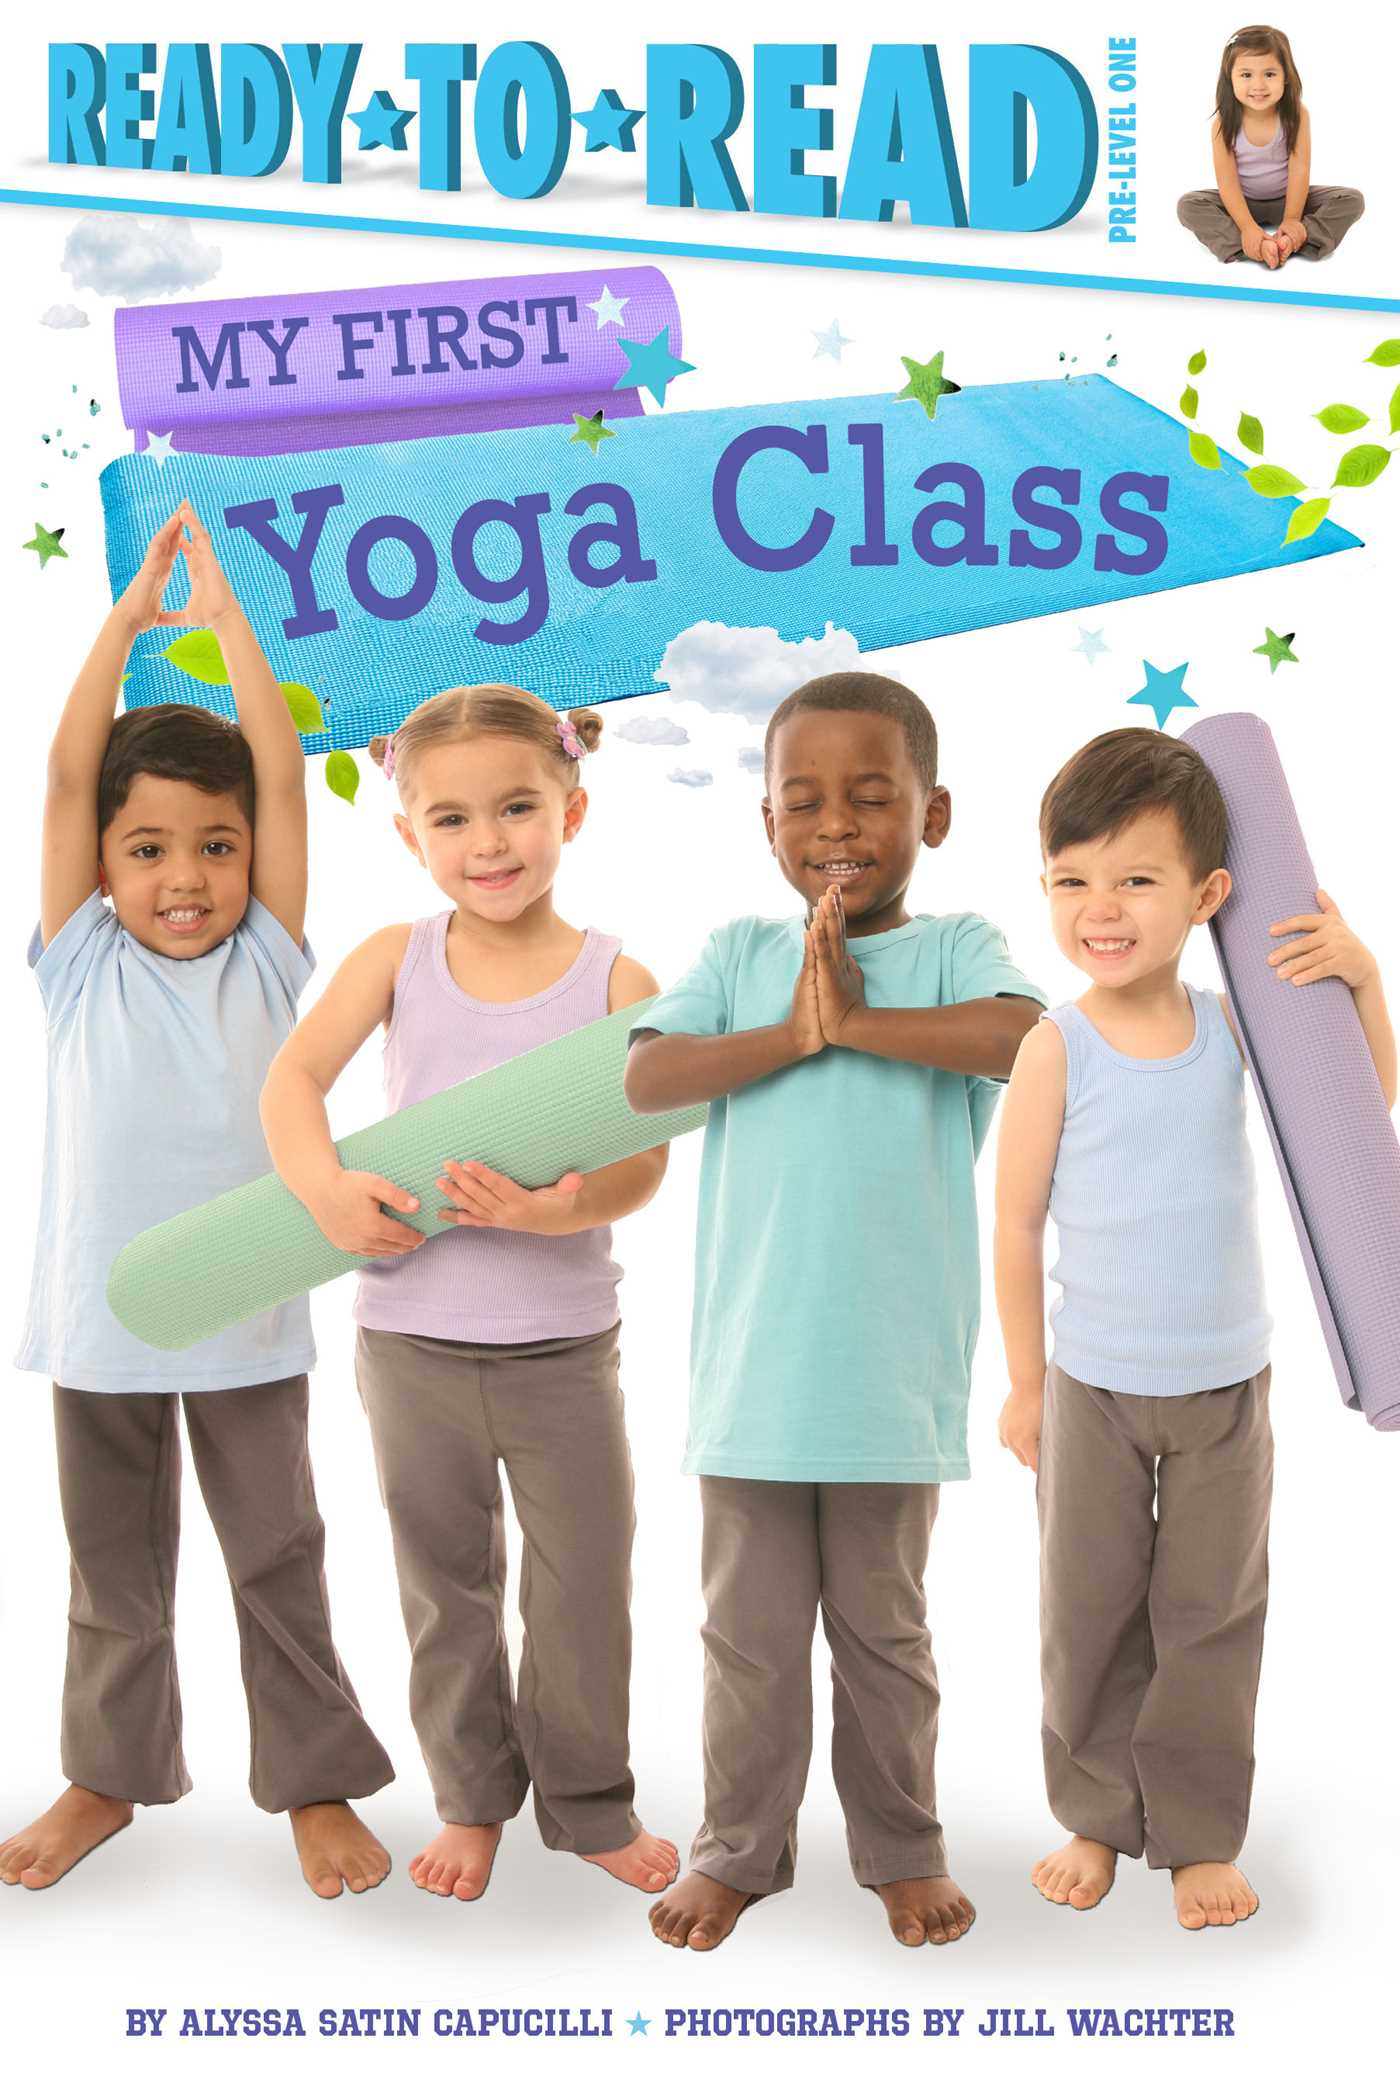 My first yoga class 9781534404847 hr